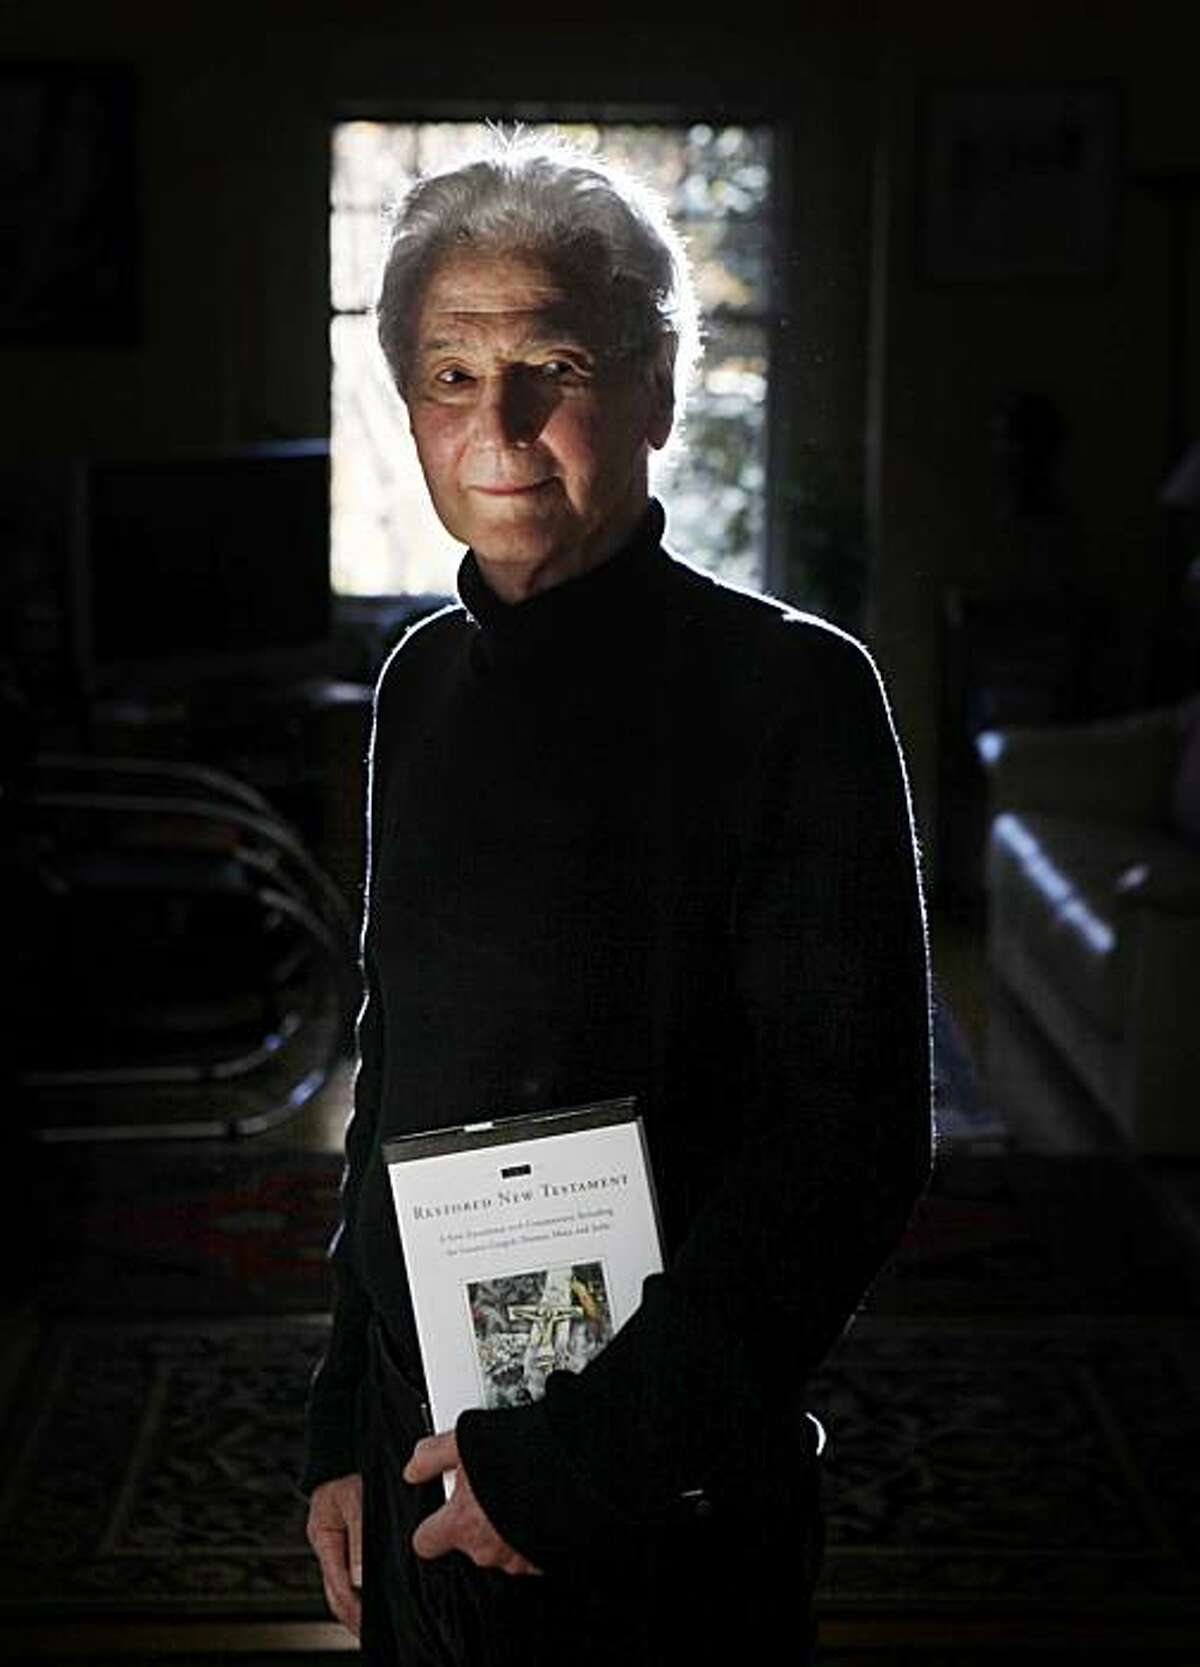 Willis Barnstone, author of a revision of the New Testament which restores Jesus' Jewish heritage more directly, stands for a portrait in his home on Monday Nov. 30, 2009 in Oakland, Calif.